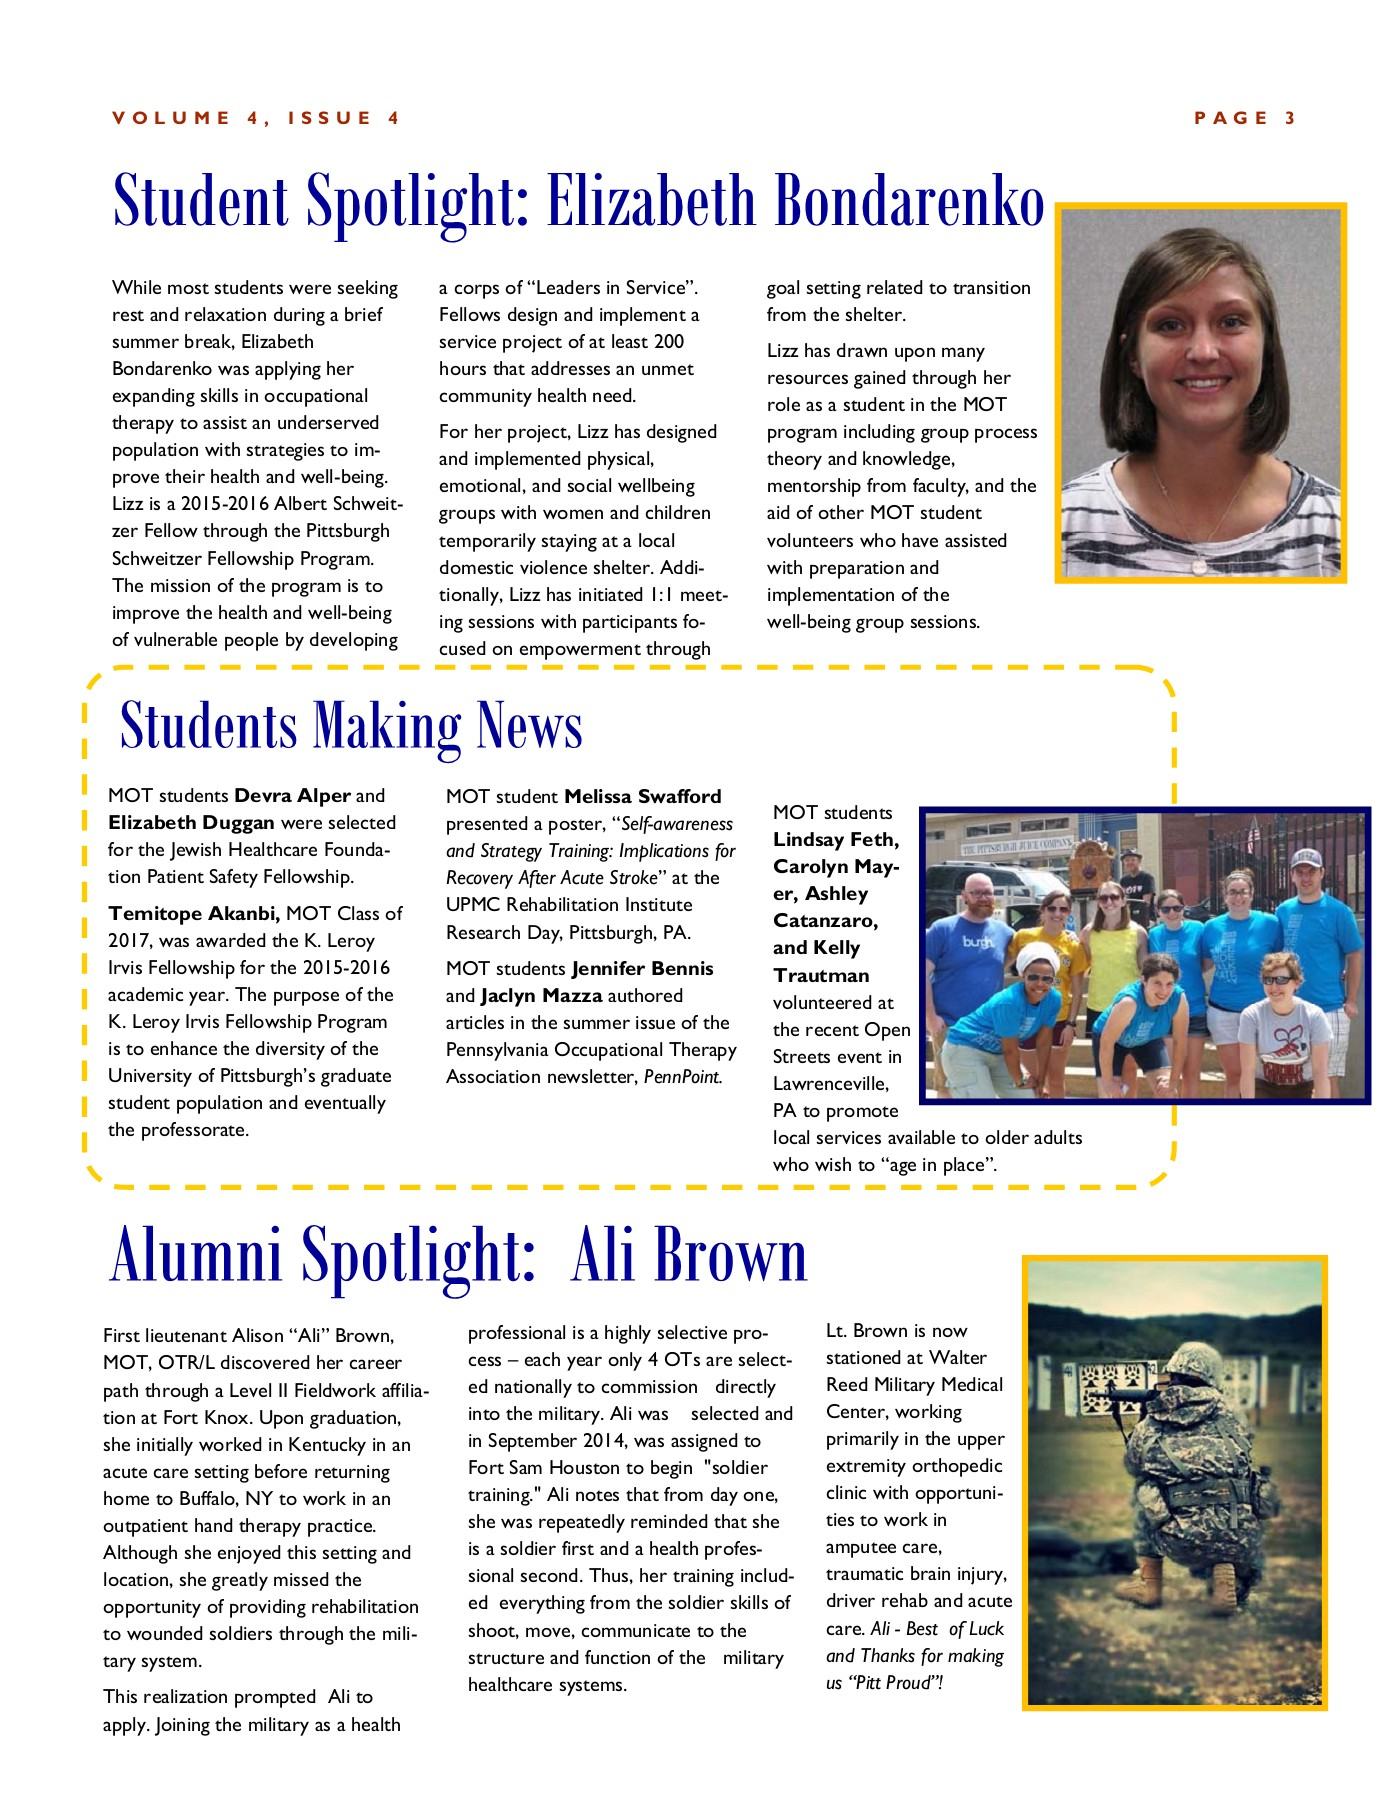 NewsLink Summer 2015 Pages 1 - 4 - Text Version   AnyFlip